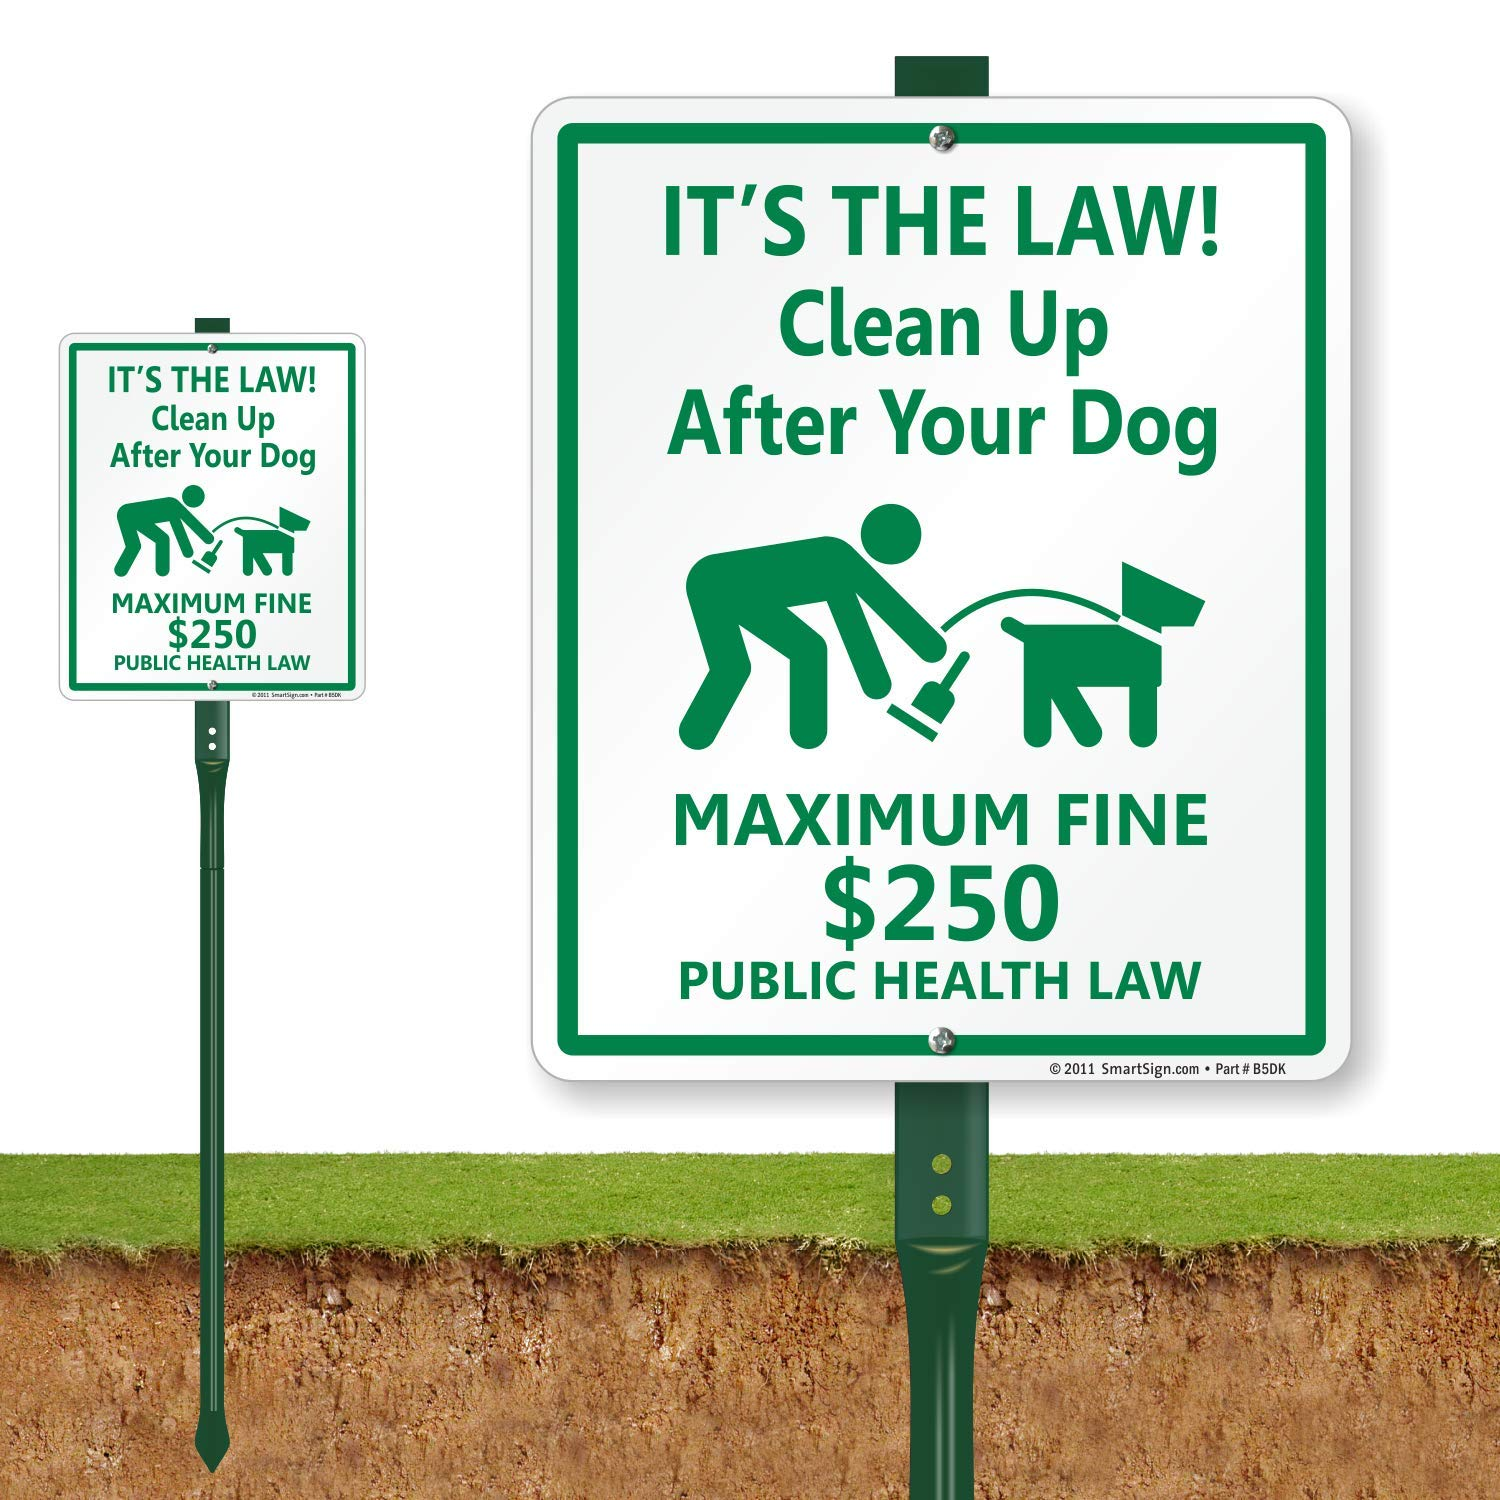 12 High X 9 Wide Sign Plus 3 Tall Stake Green on White SmartSign Aluminum Sign LegendClean up After Your Dog-Maximum Fine $250 with Graphic